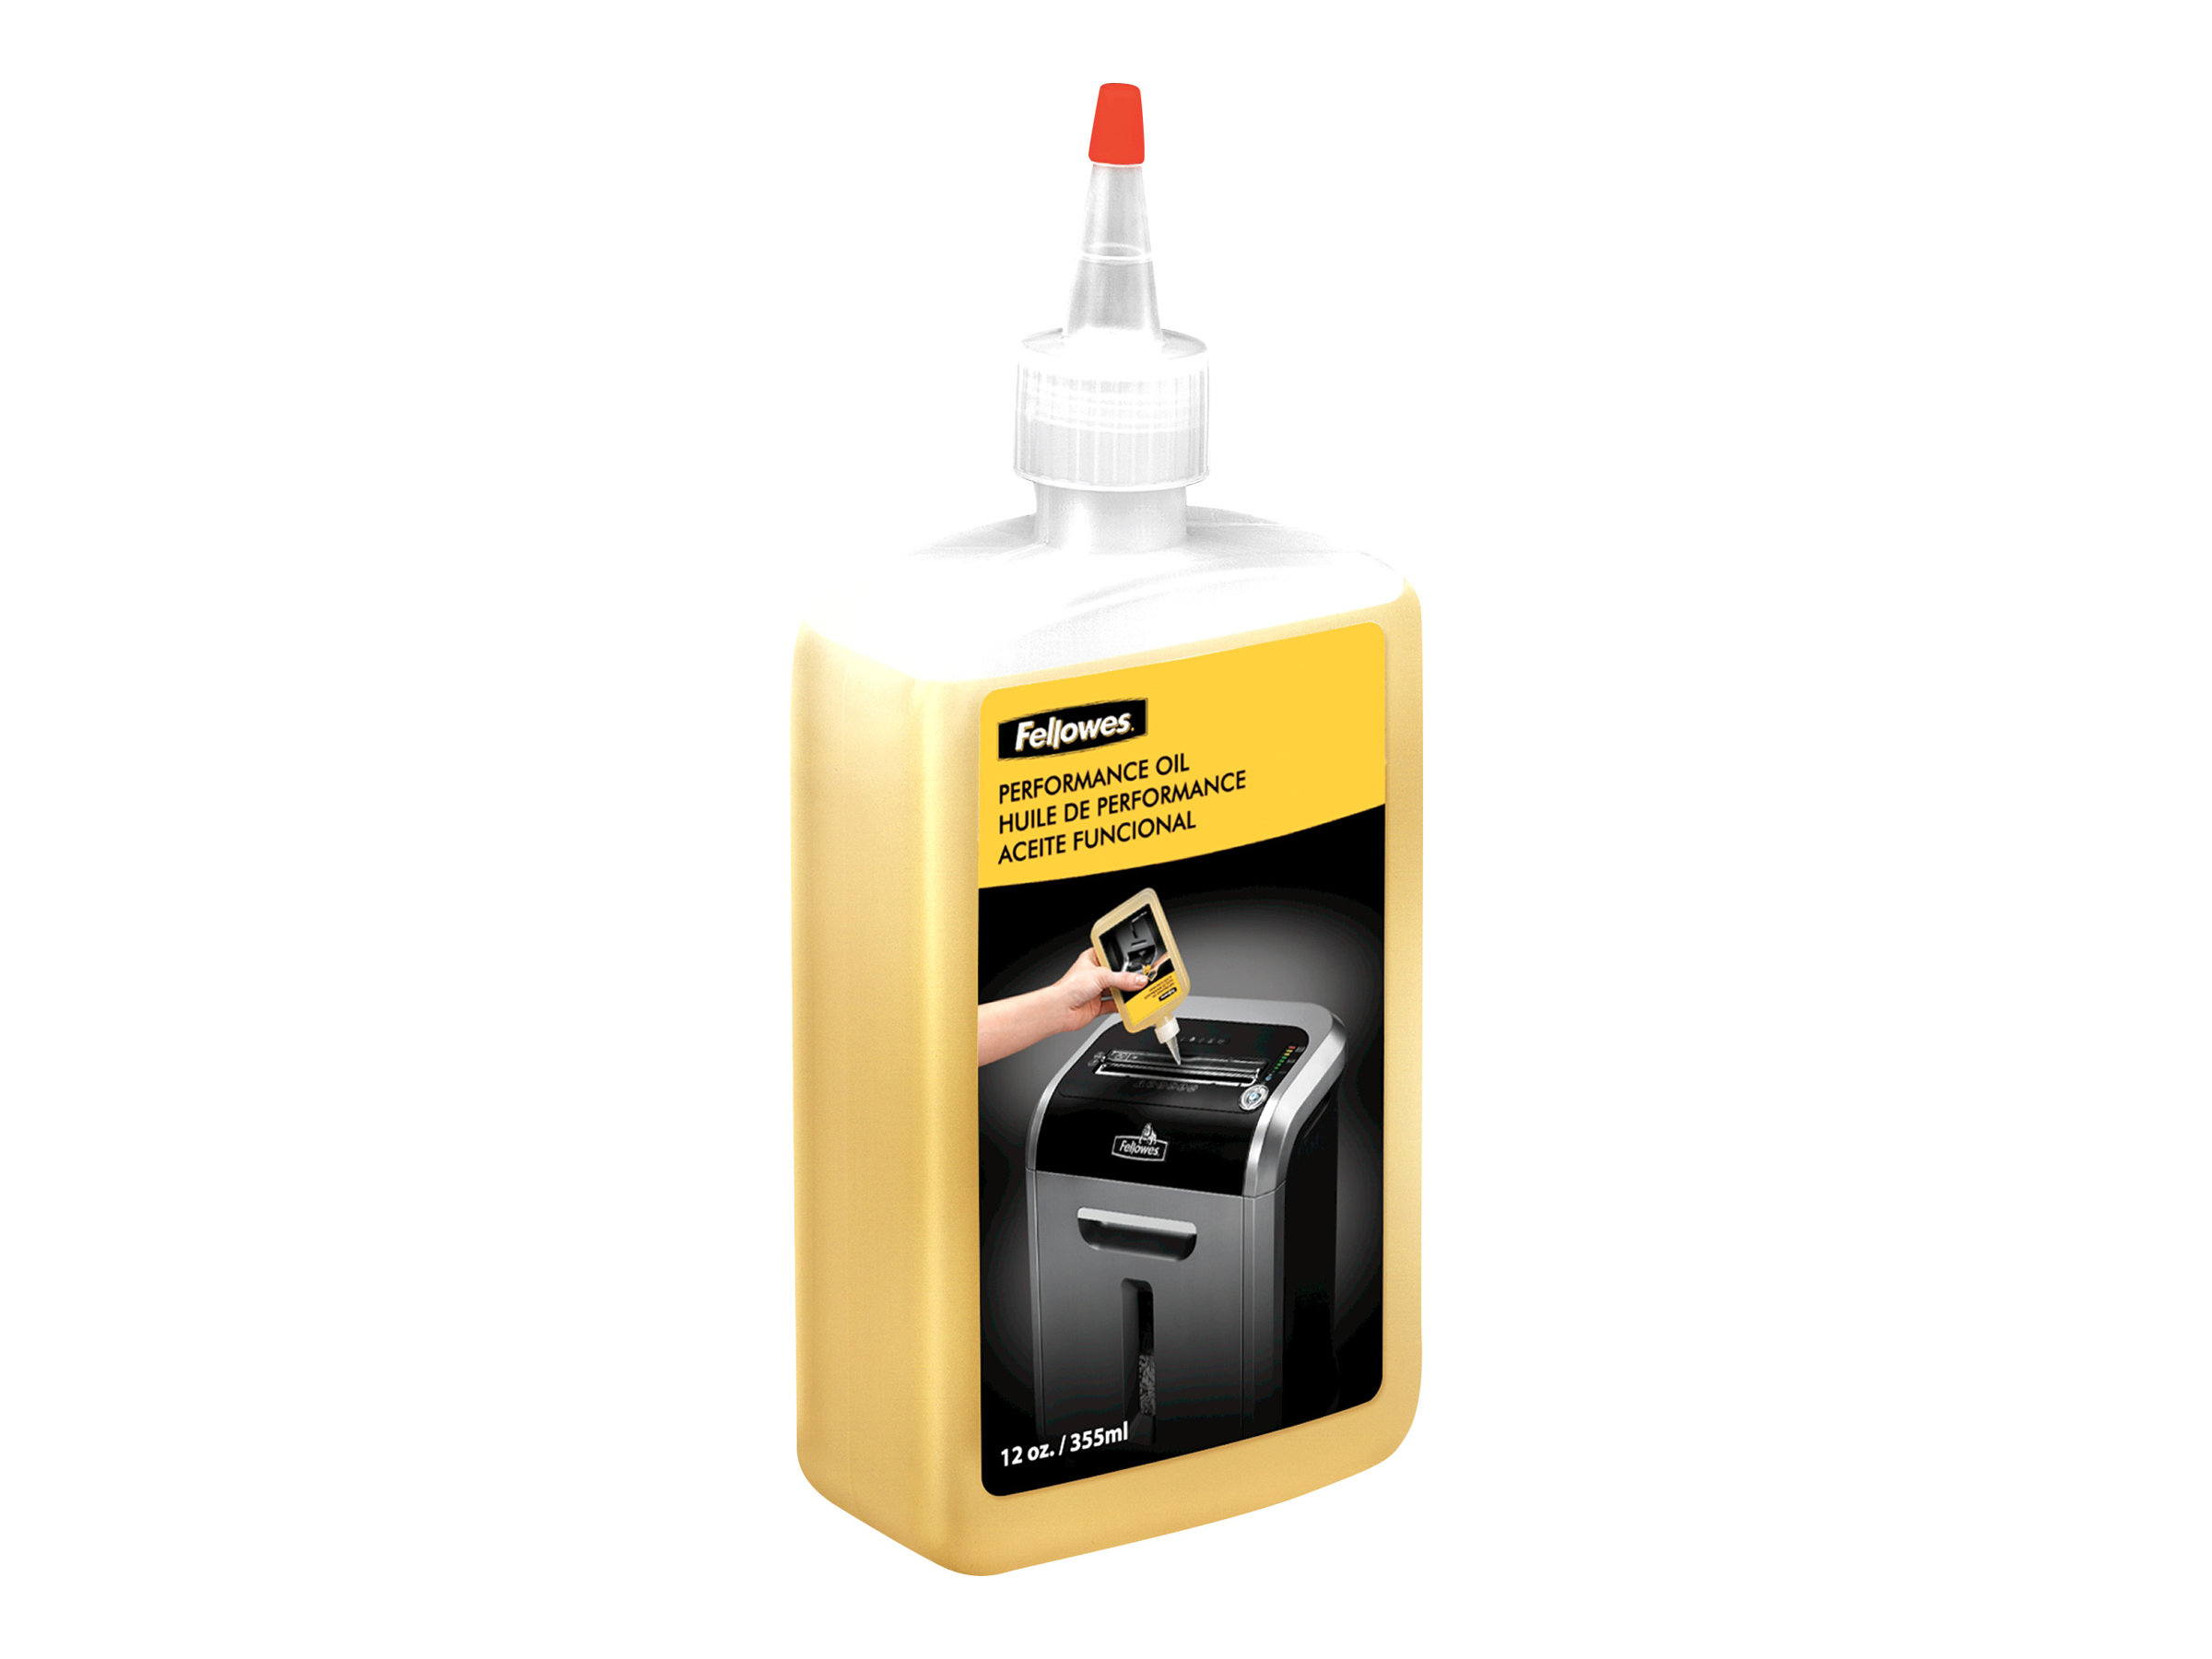 Fellowes Powershred cleaning oil / lubricant